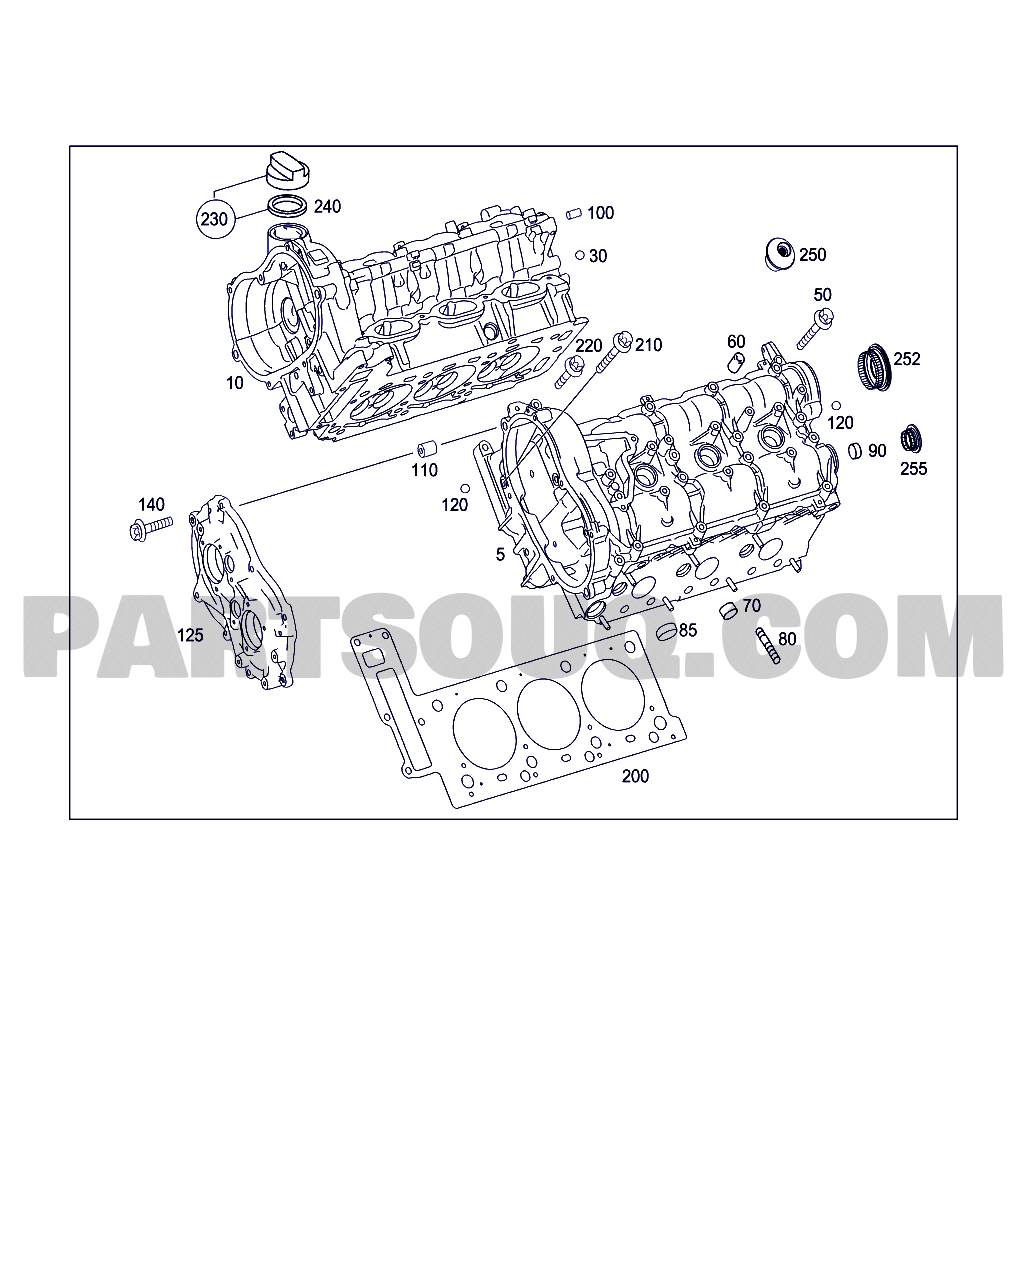 Mercedes Benz Parts Catalog >> Cylinder Head Gasket Kit Clk 350 Wdb2094562t064609 01 11